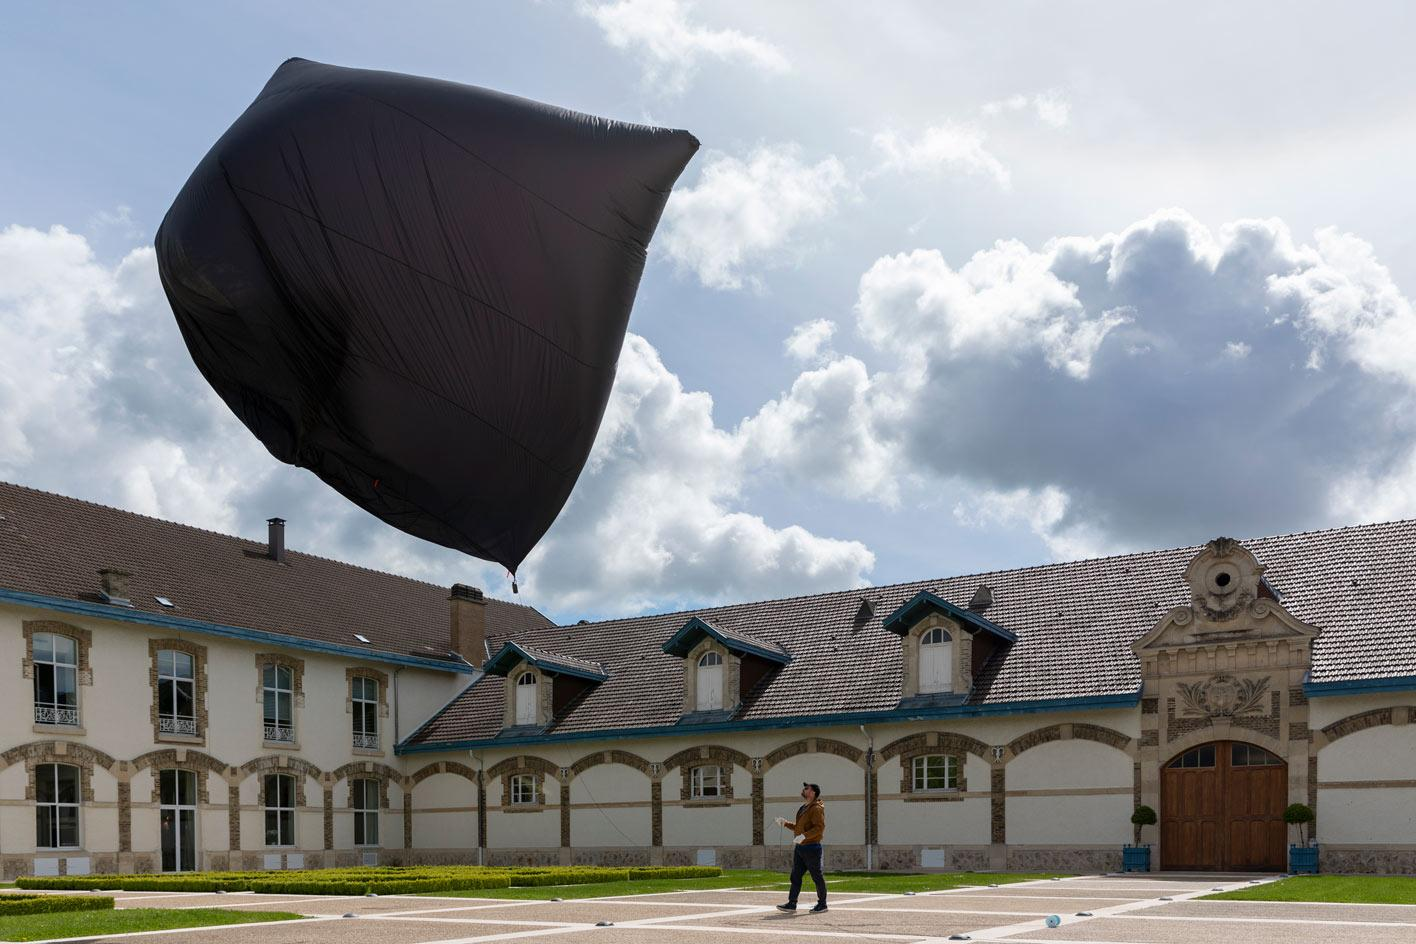 Tomás Saraceno, Aerocene sculpture and augmented reality for Maison Ruinart